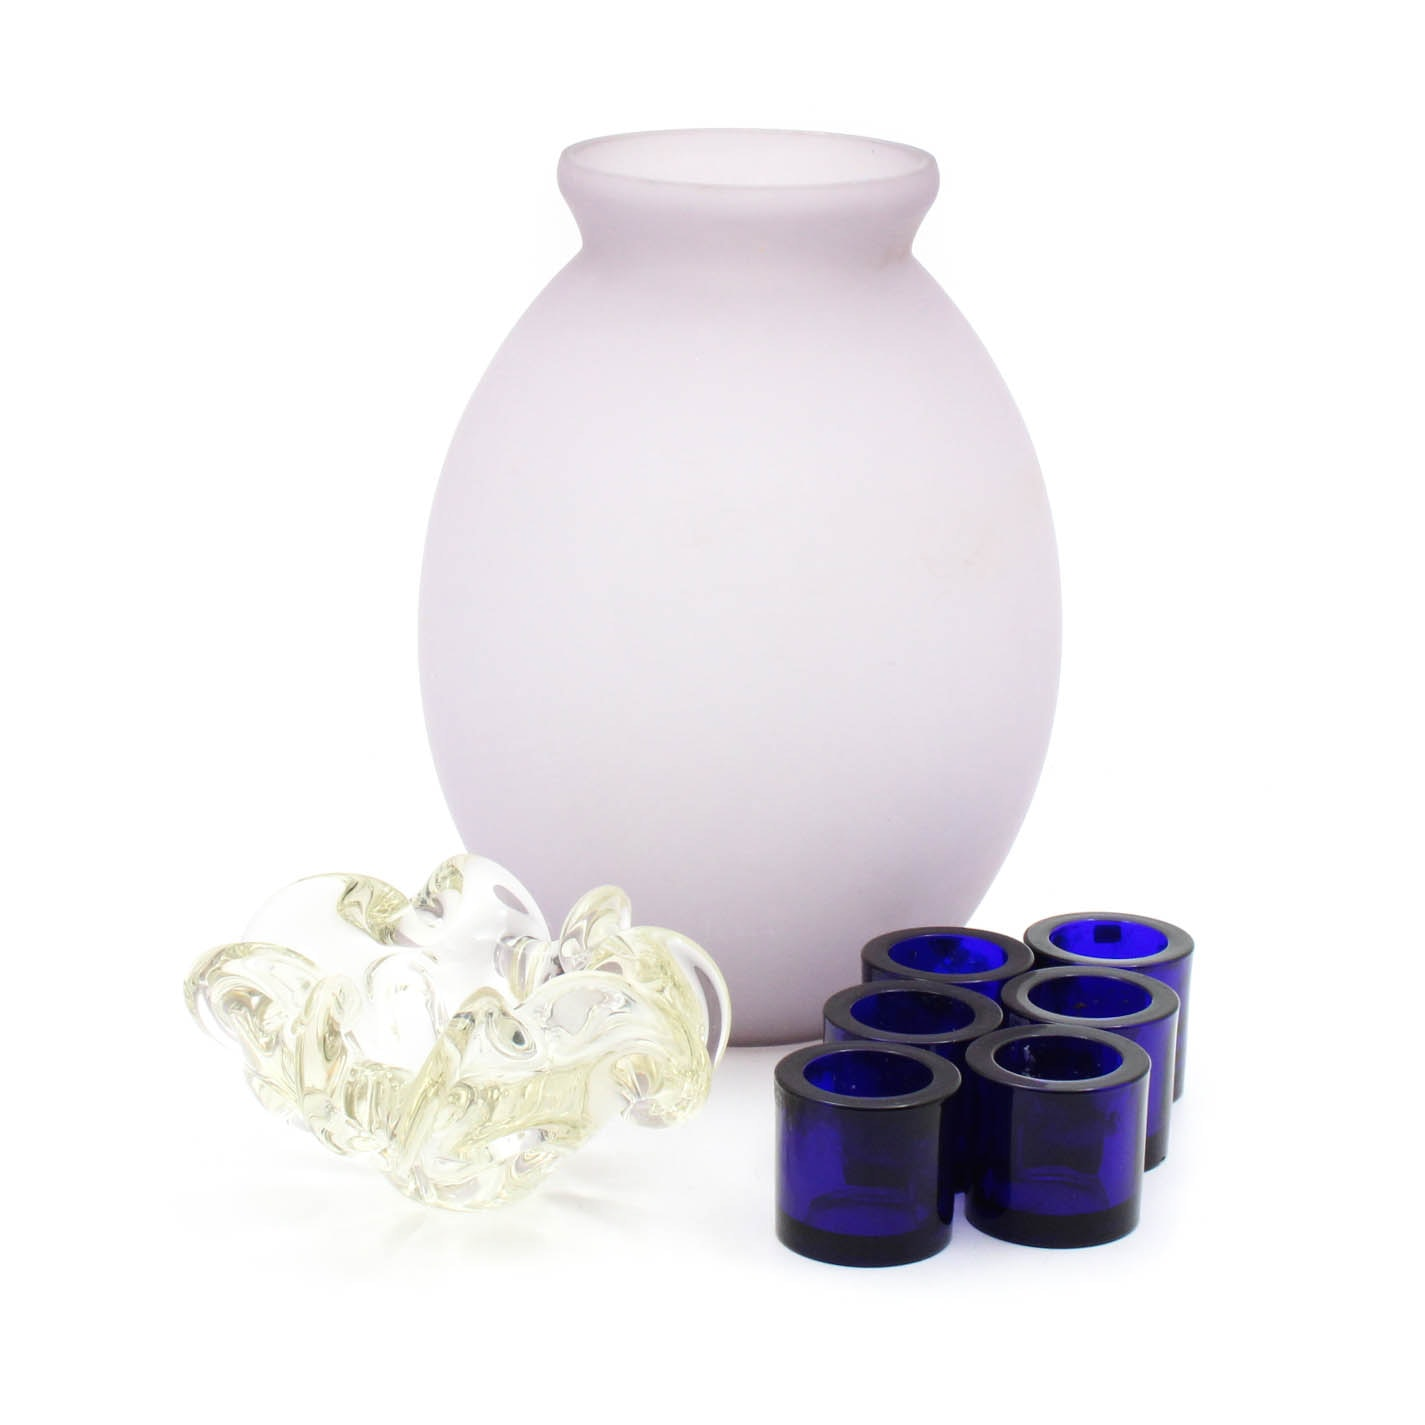 Hand Blown Glass Vase, Blue Glass Votives and Murano Style Scalloped Bowl